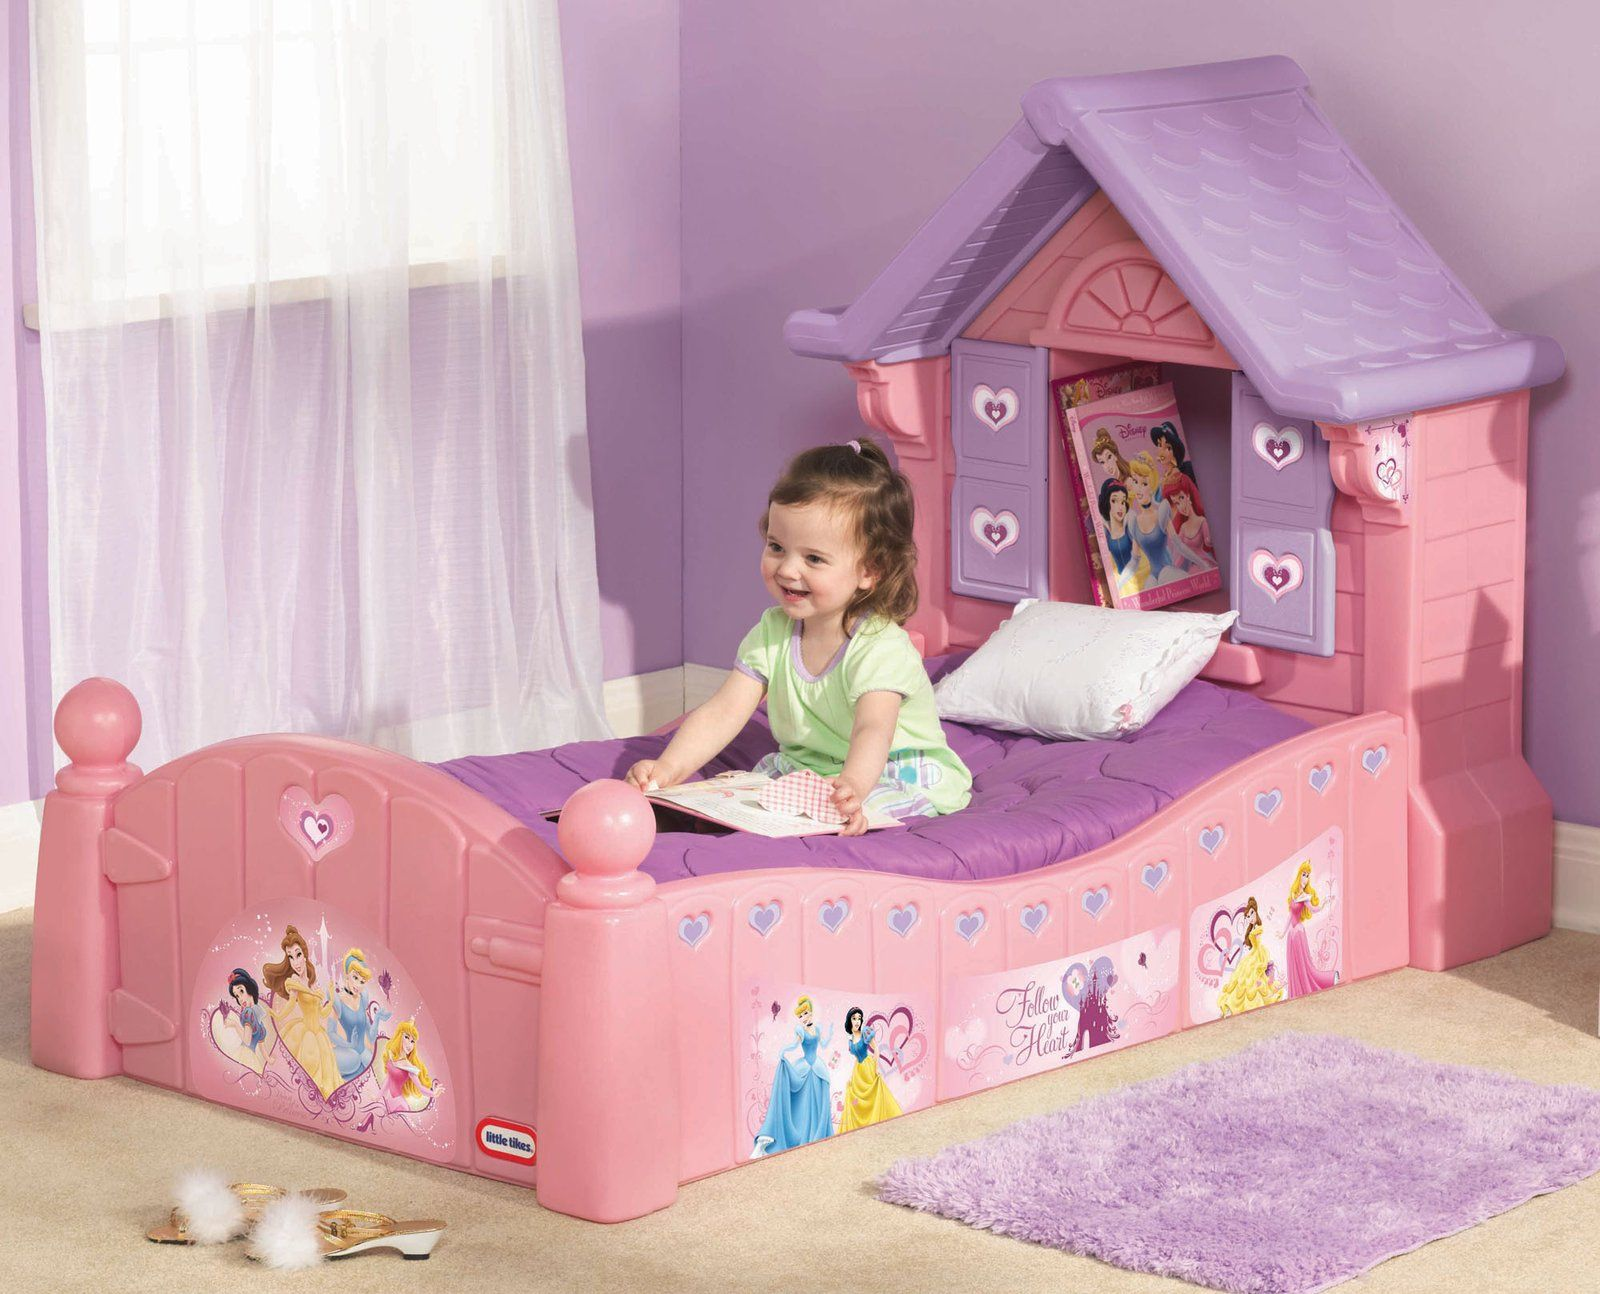 I Need To Find This Bed Little Tikes Disney Princess Toddler Bed